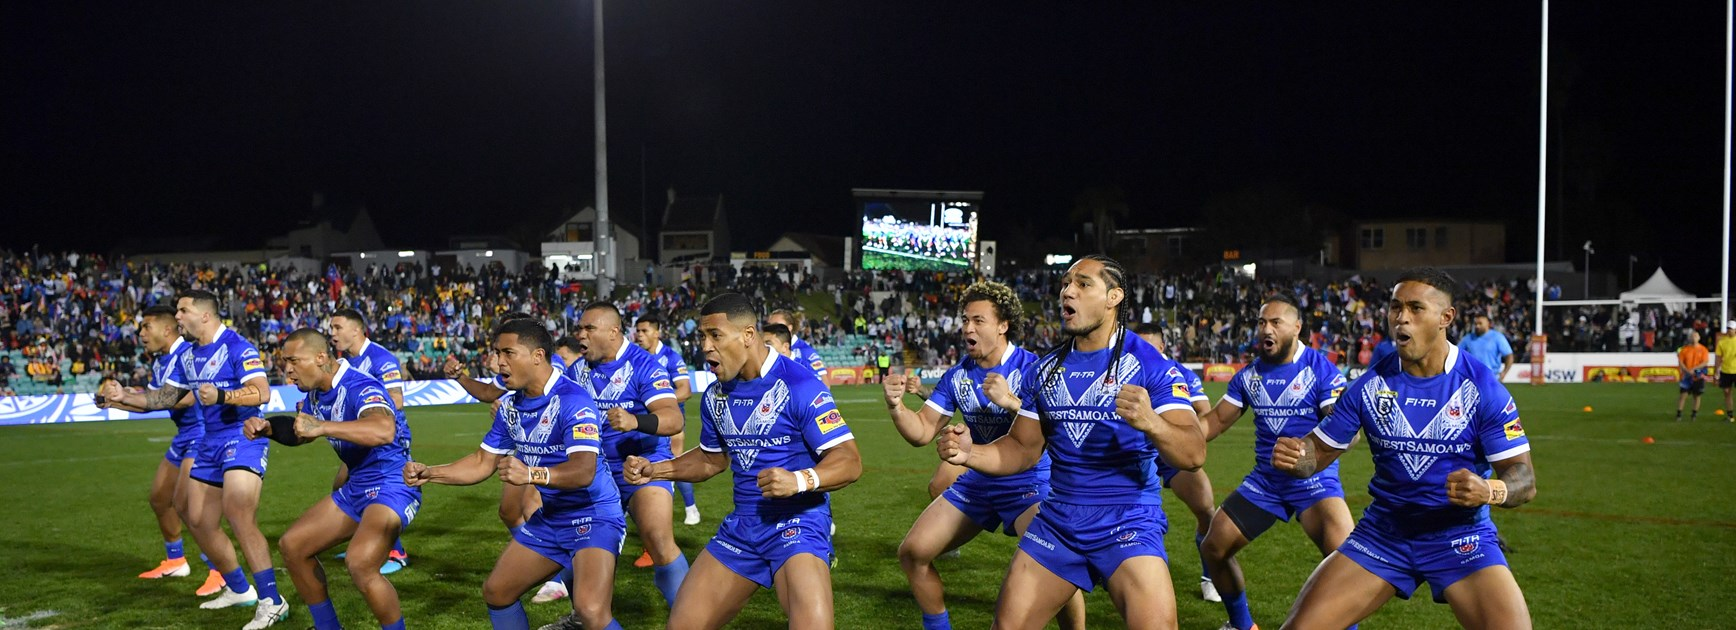 Samoan side stacked with NRL talent and flair